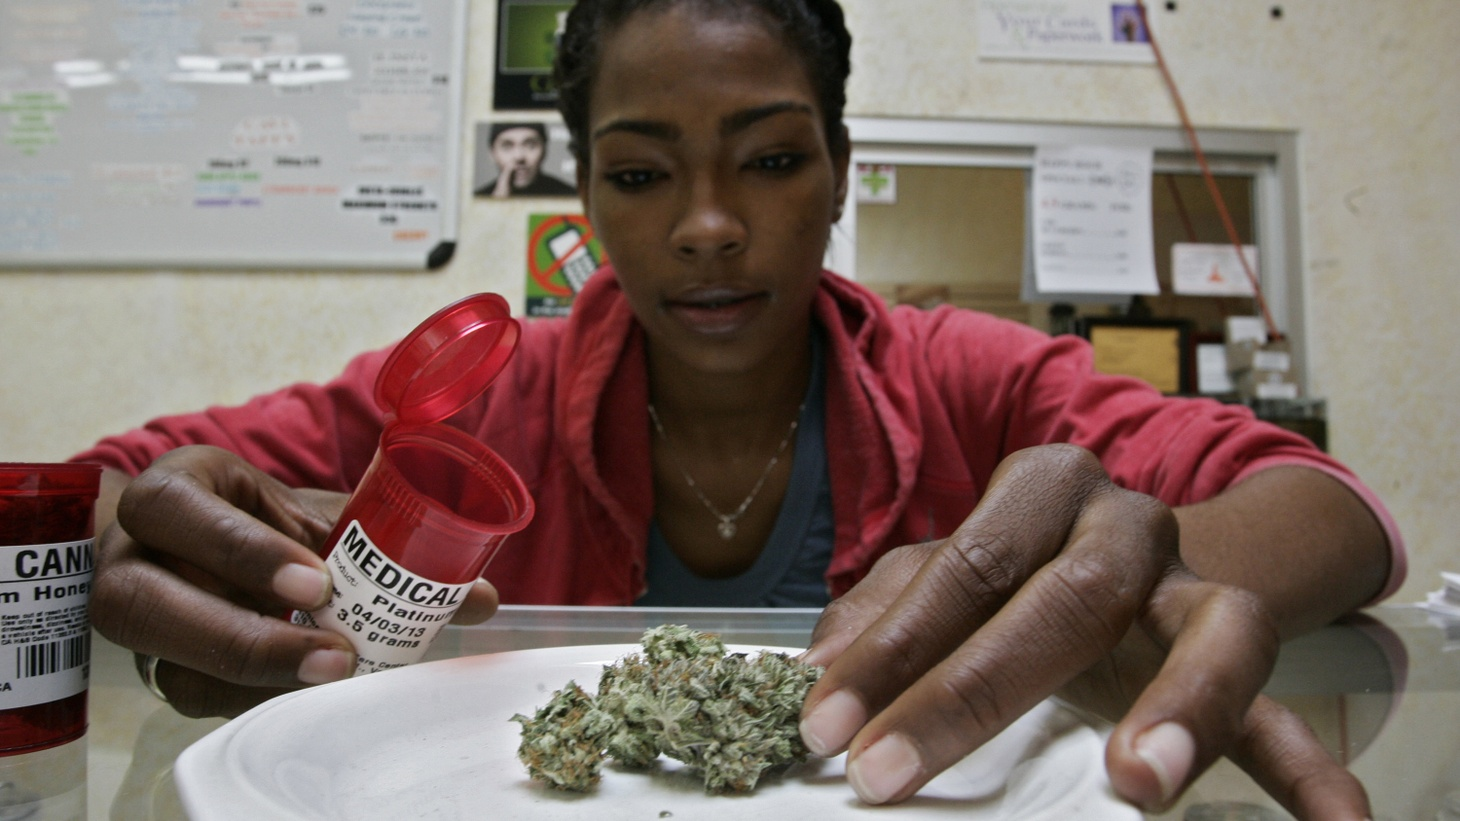 Ayrn Taylor, a United Food and Commercial Workers union (UFCW) member and employee at the Venice Beach Care Center, displays medical marijuana during a media visit at the medical marijuana dispensary in Los Angeles, California February 6, 2013.